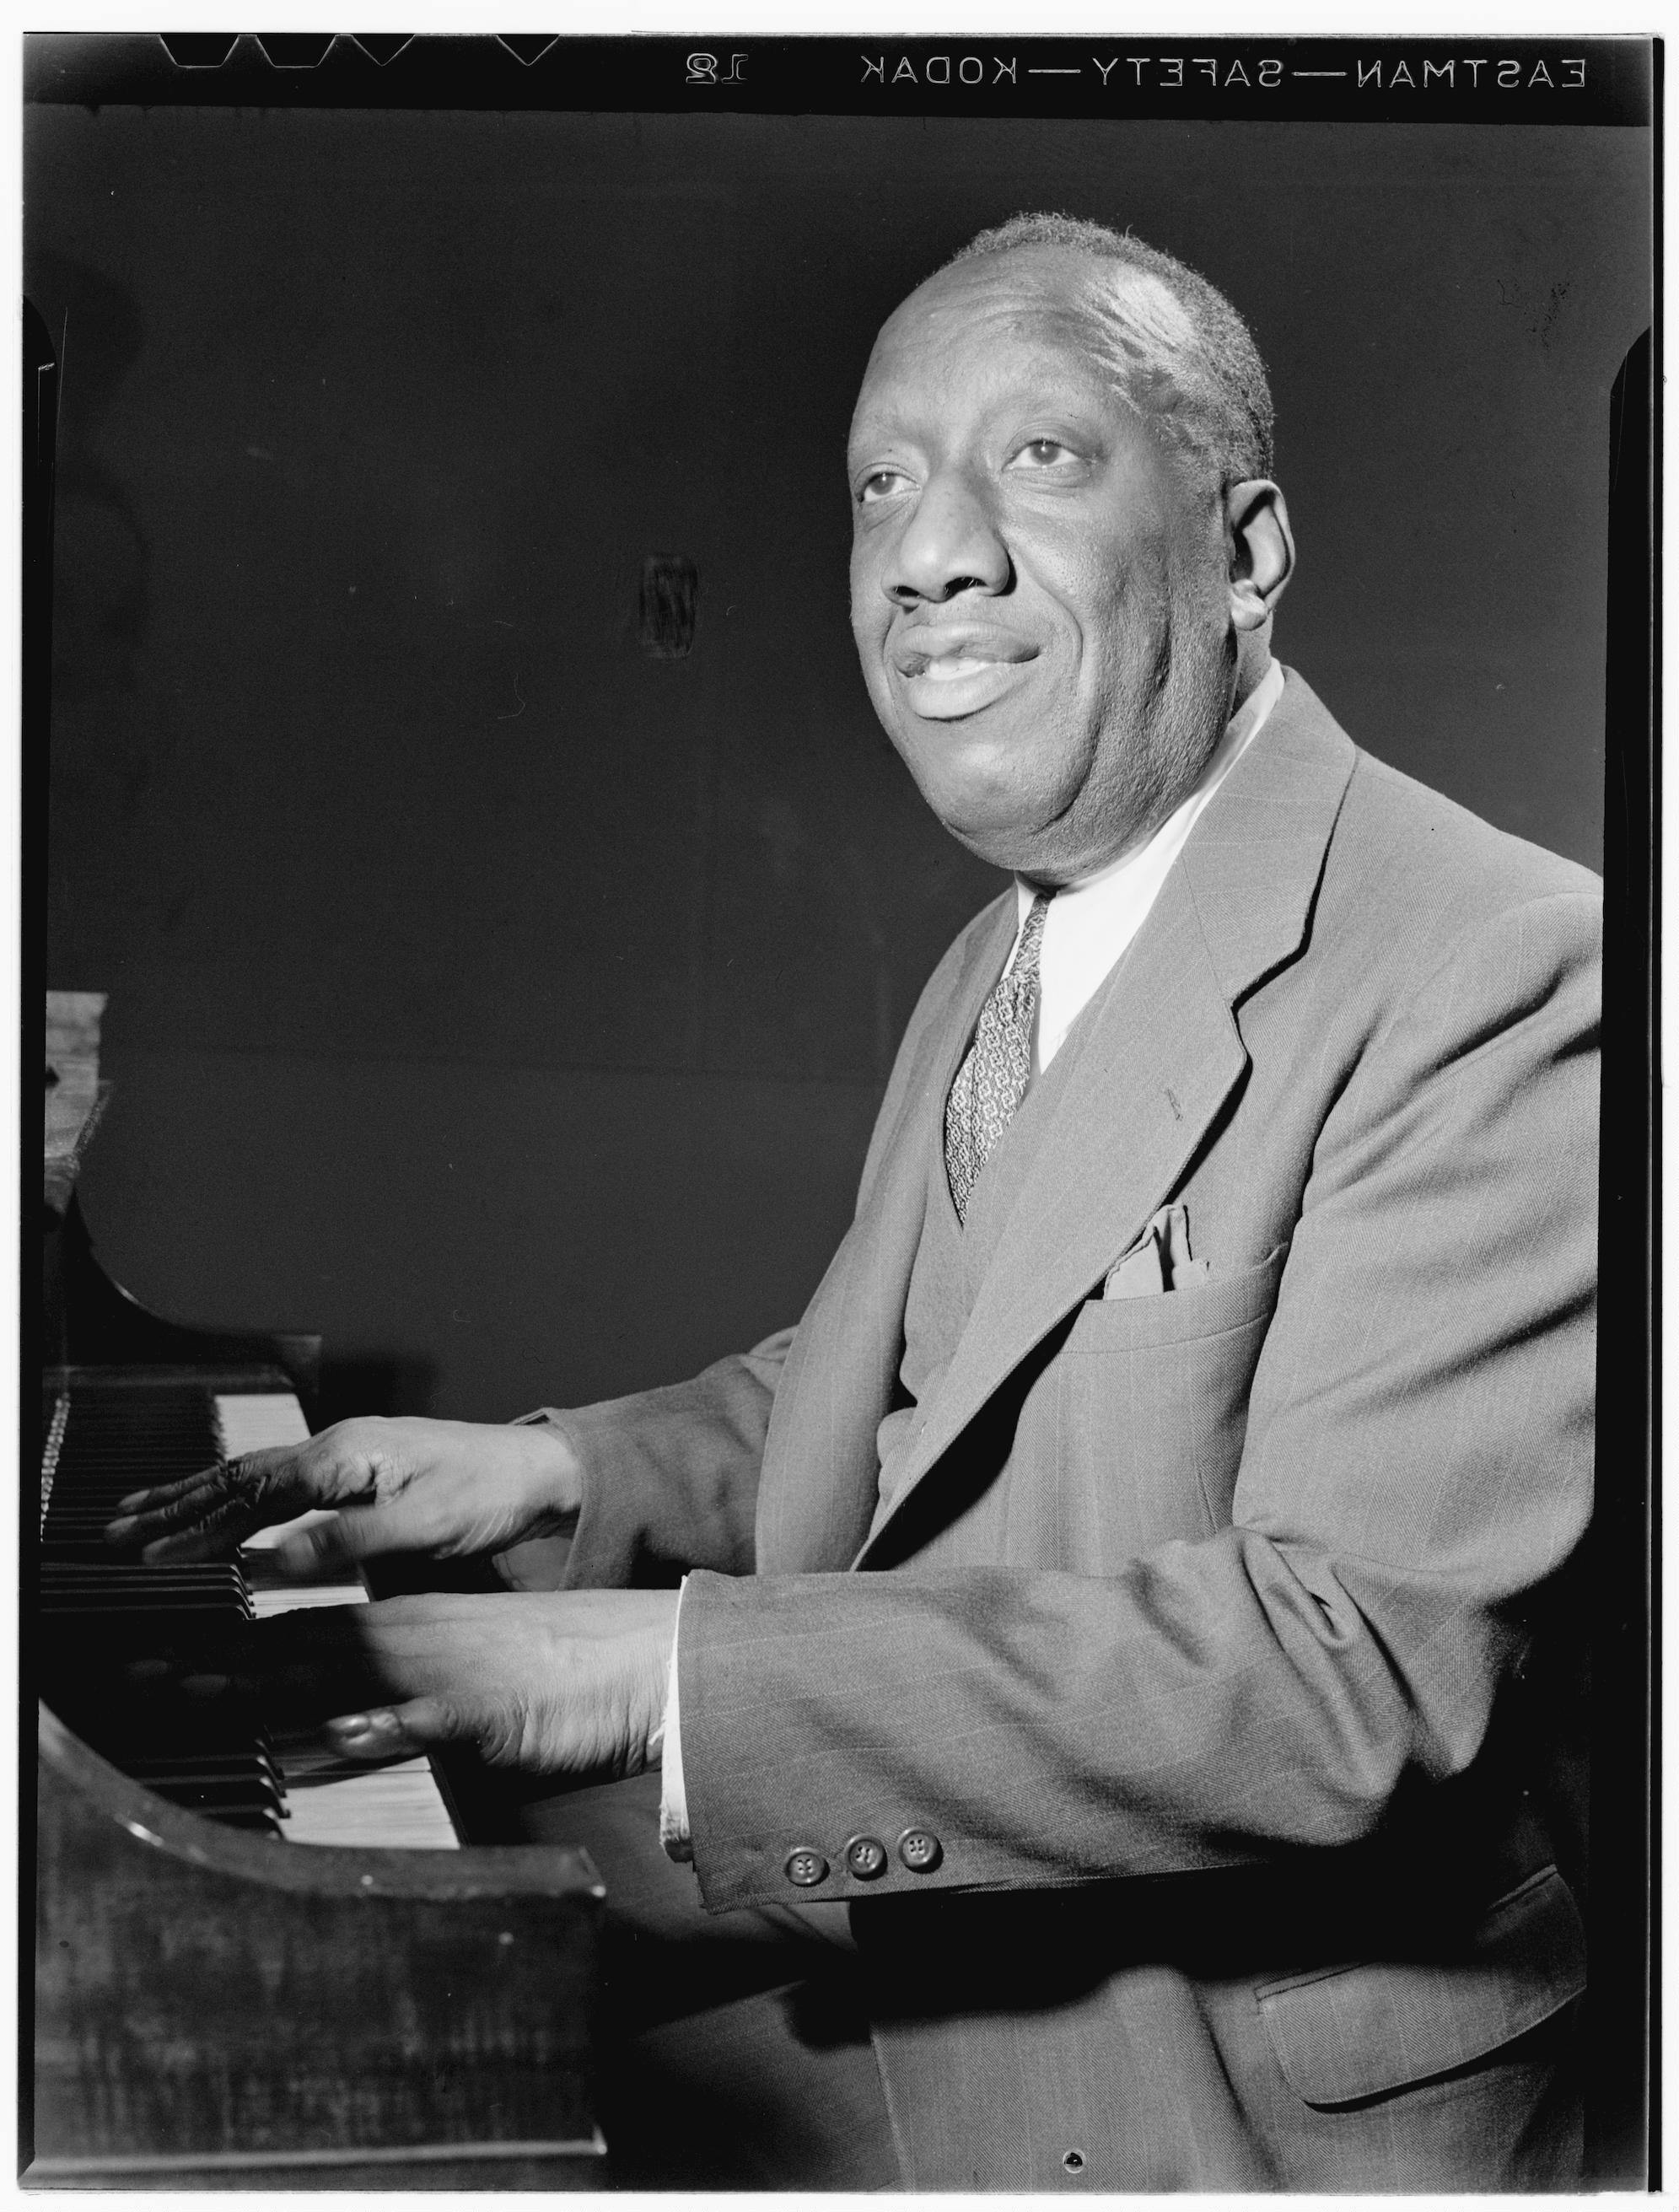 Photo of pianist James P. Johnson